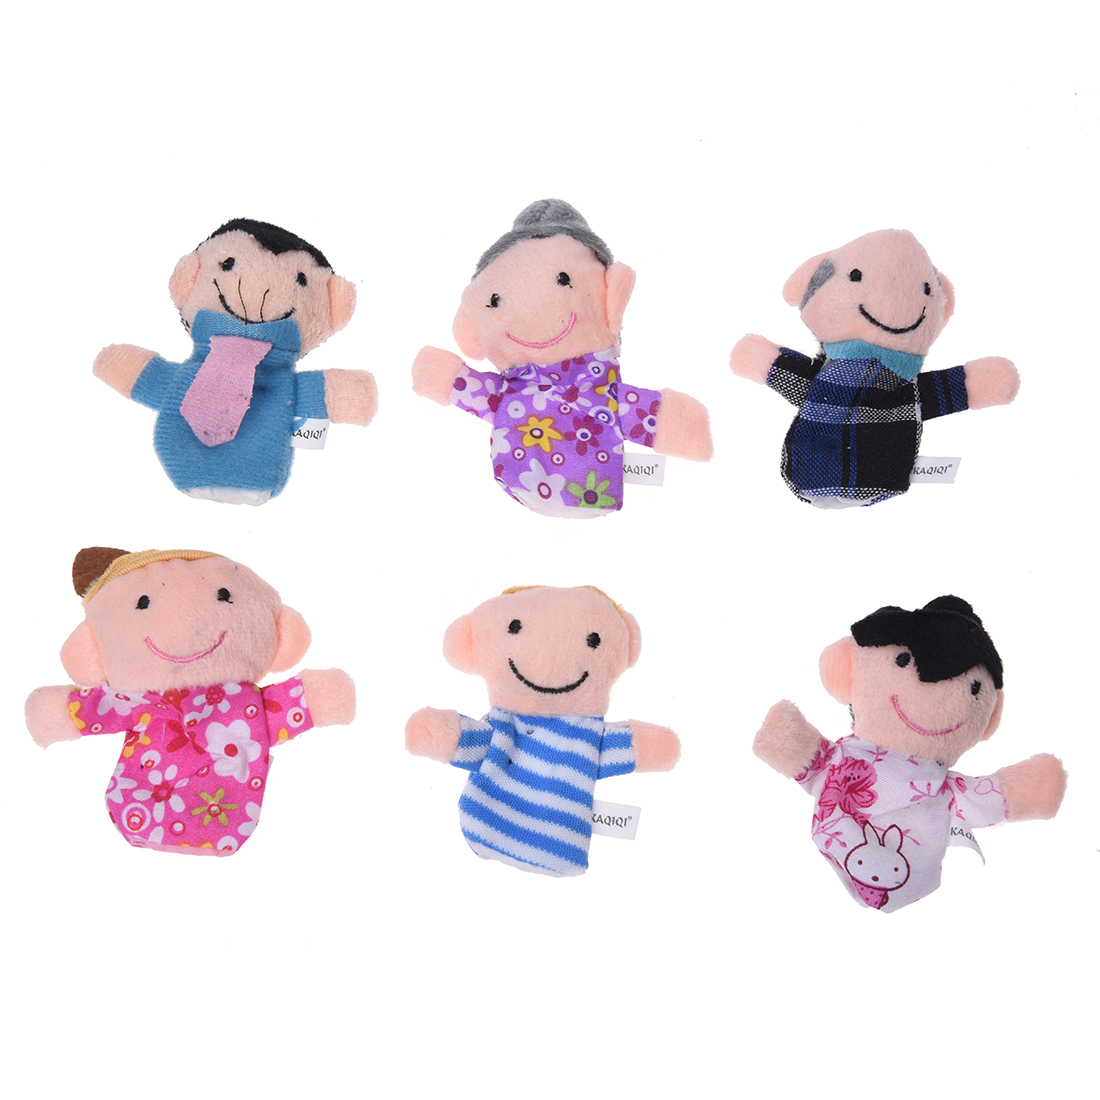 FEDI Best Sale 6Pcs Family Finger Puppet Cloth Baby Childs Kid Play Learn Story Helper Toy Doll